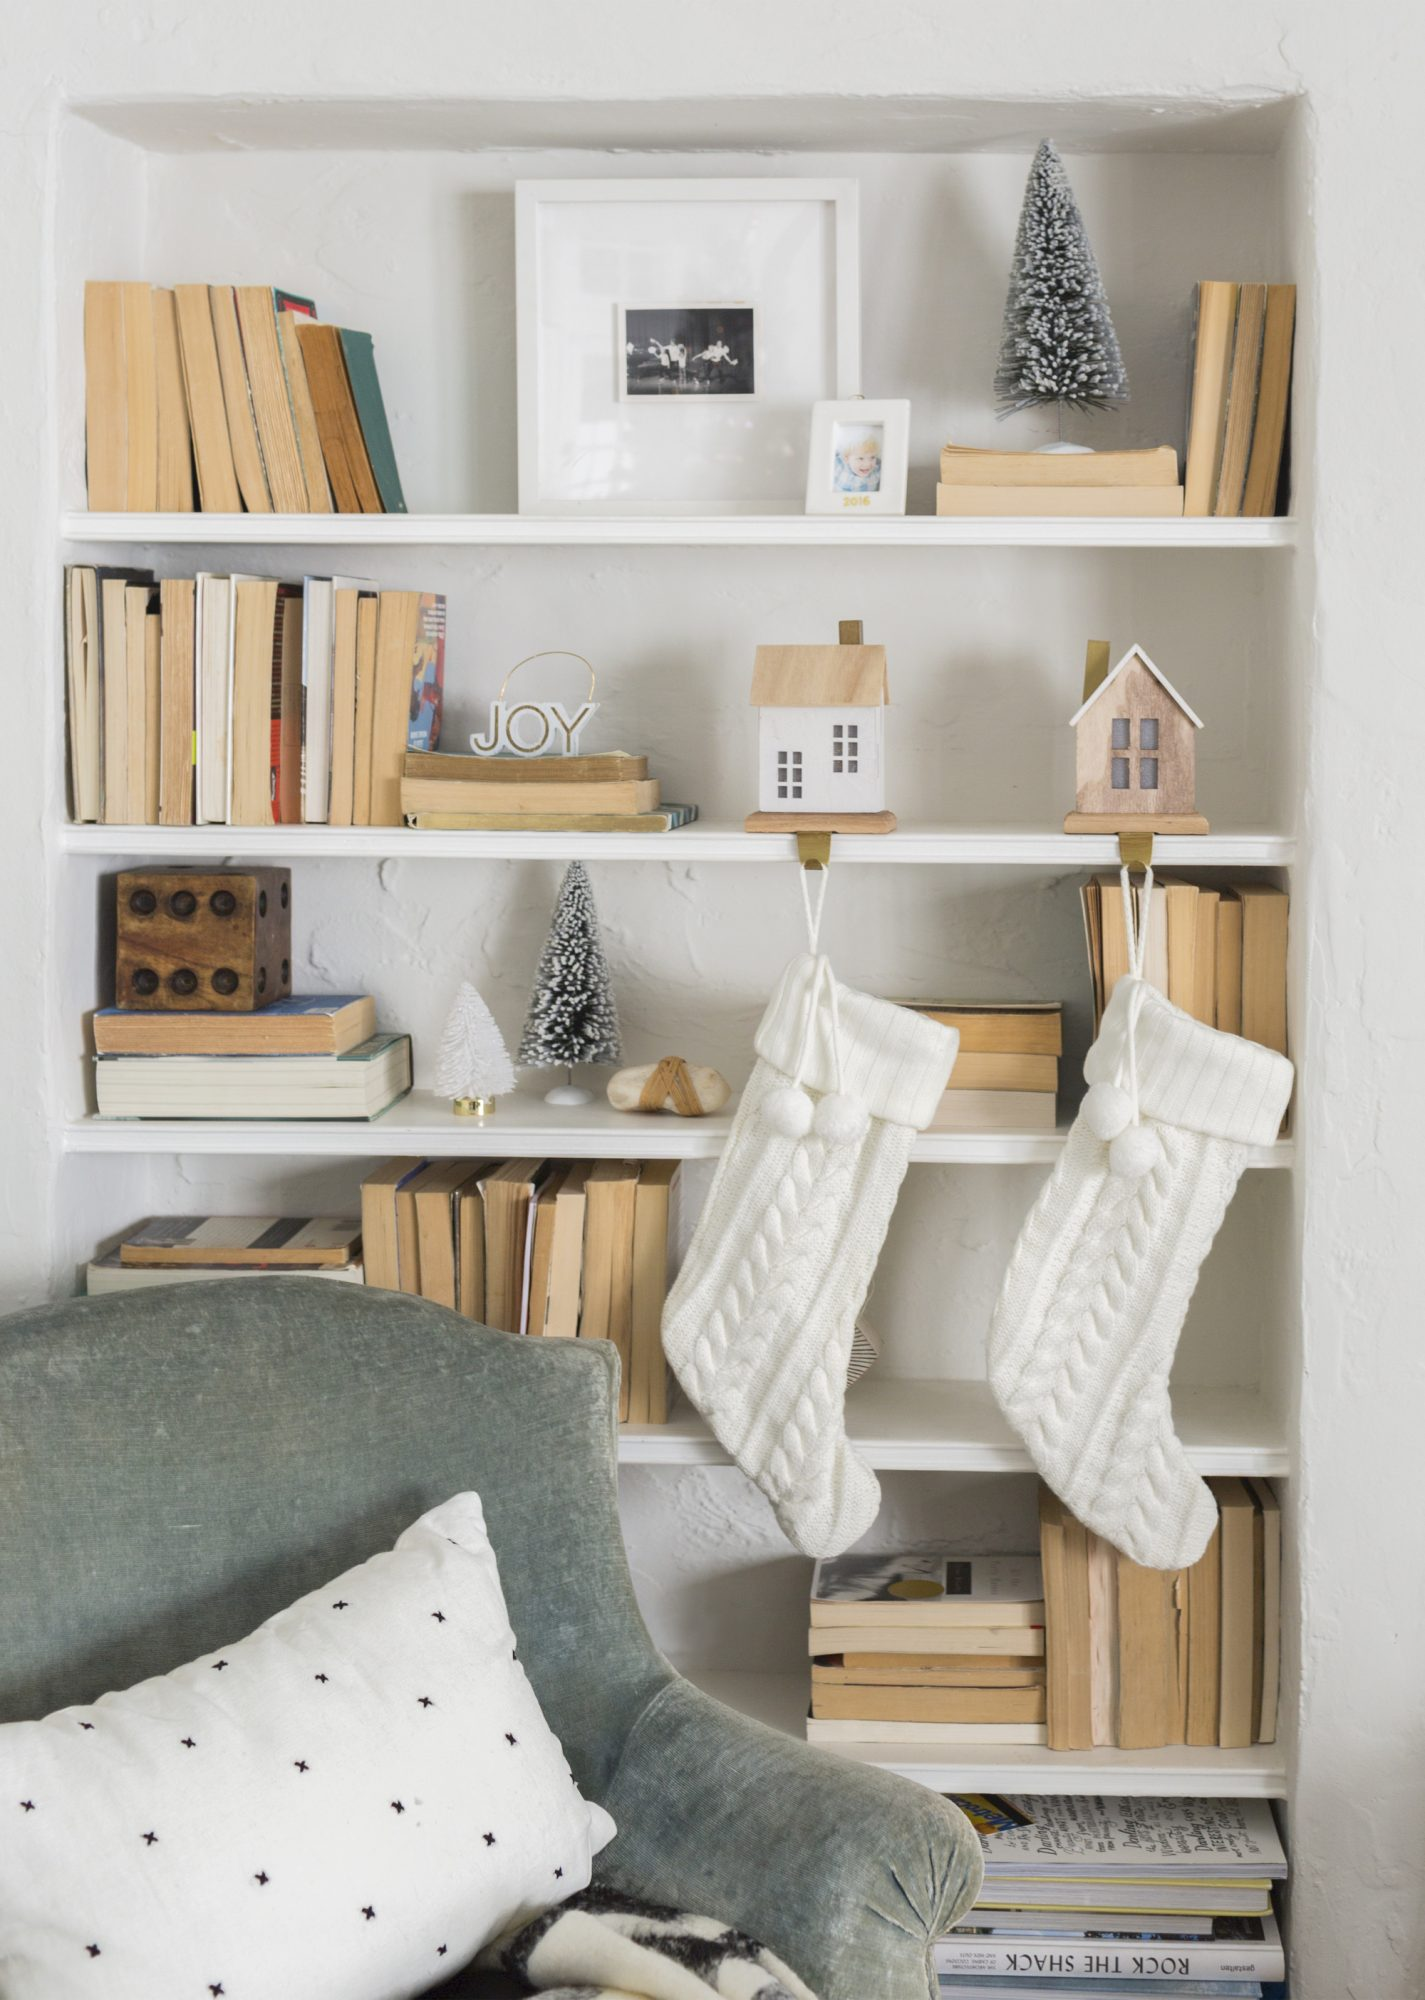 Holiday Decorating Ideas, Shelfie with stockings